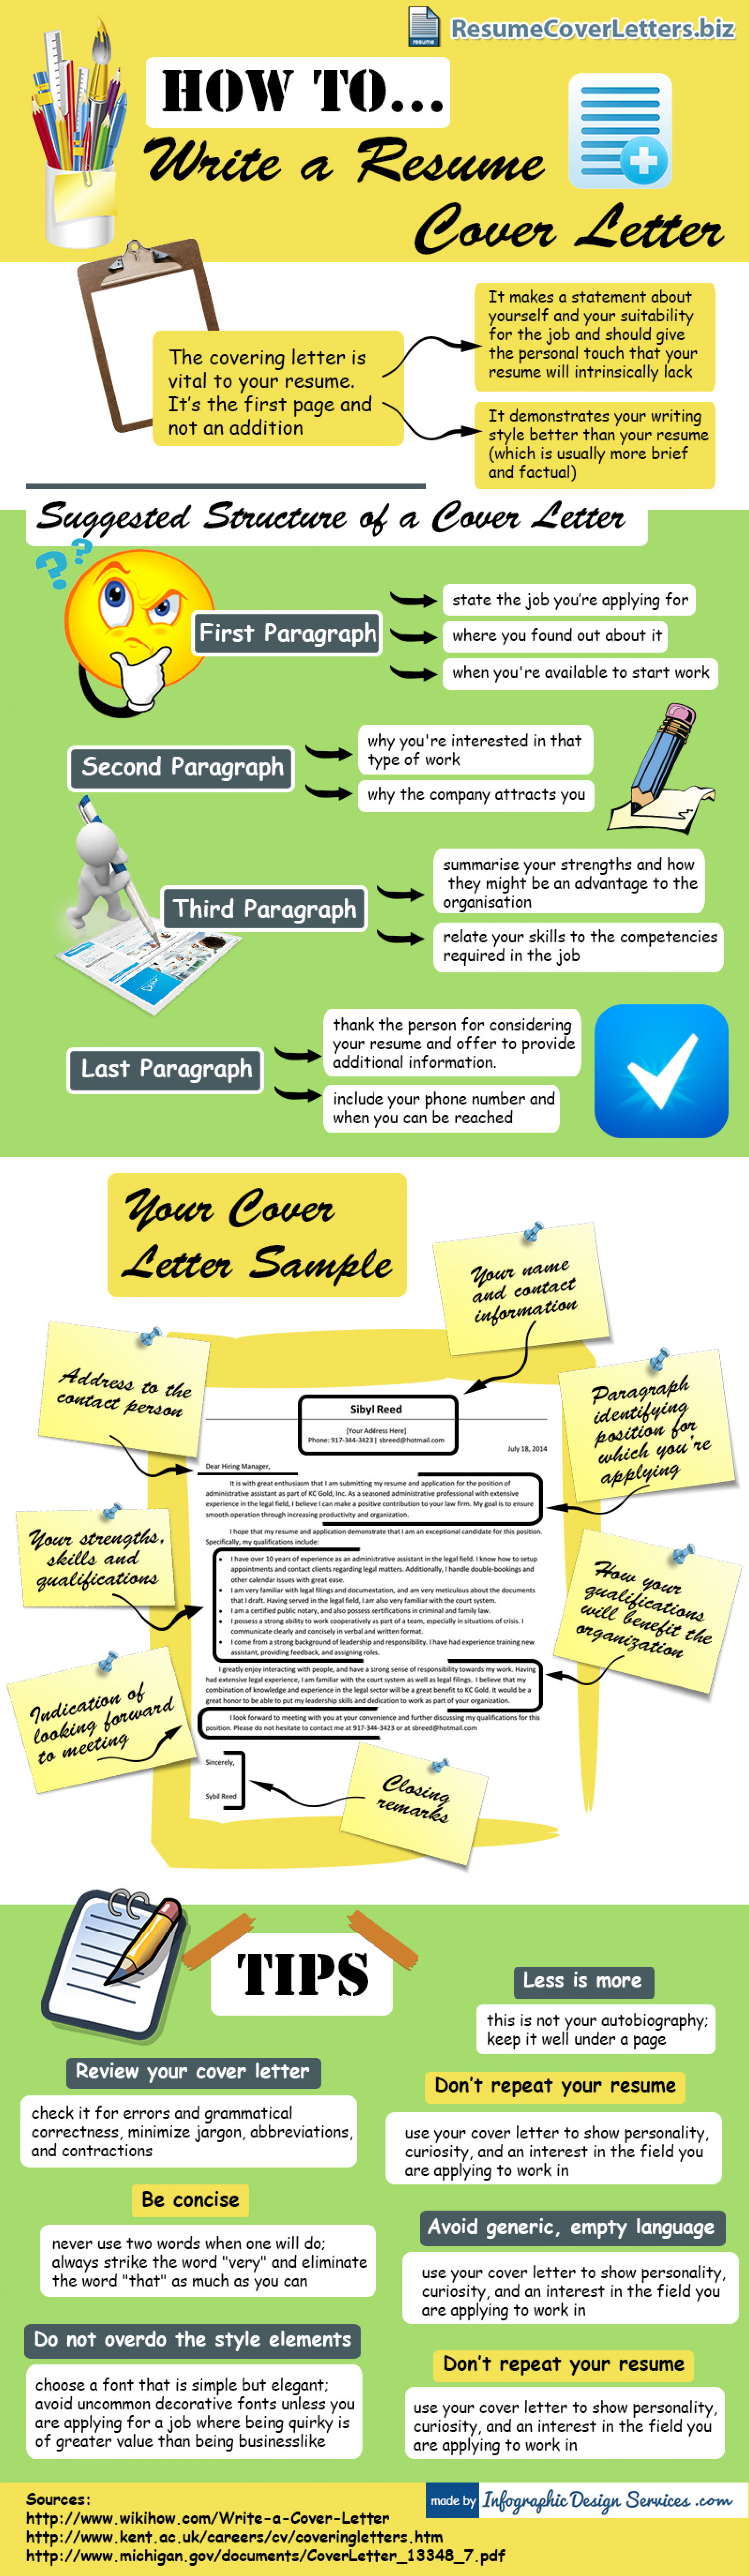 tips for cover letter how to write a cover letter cover letter